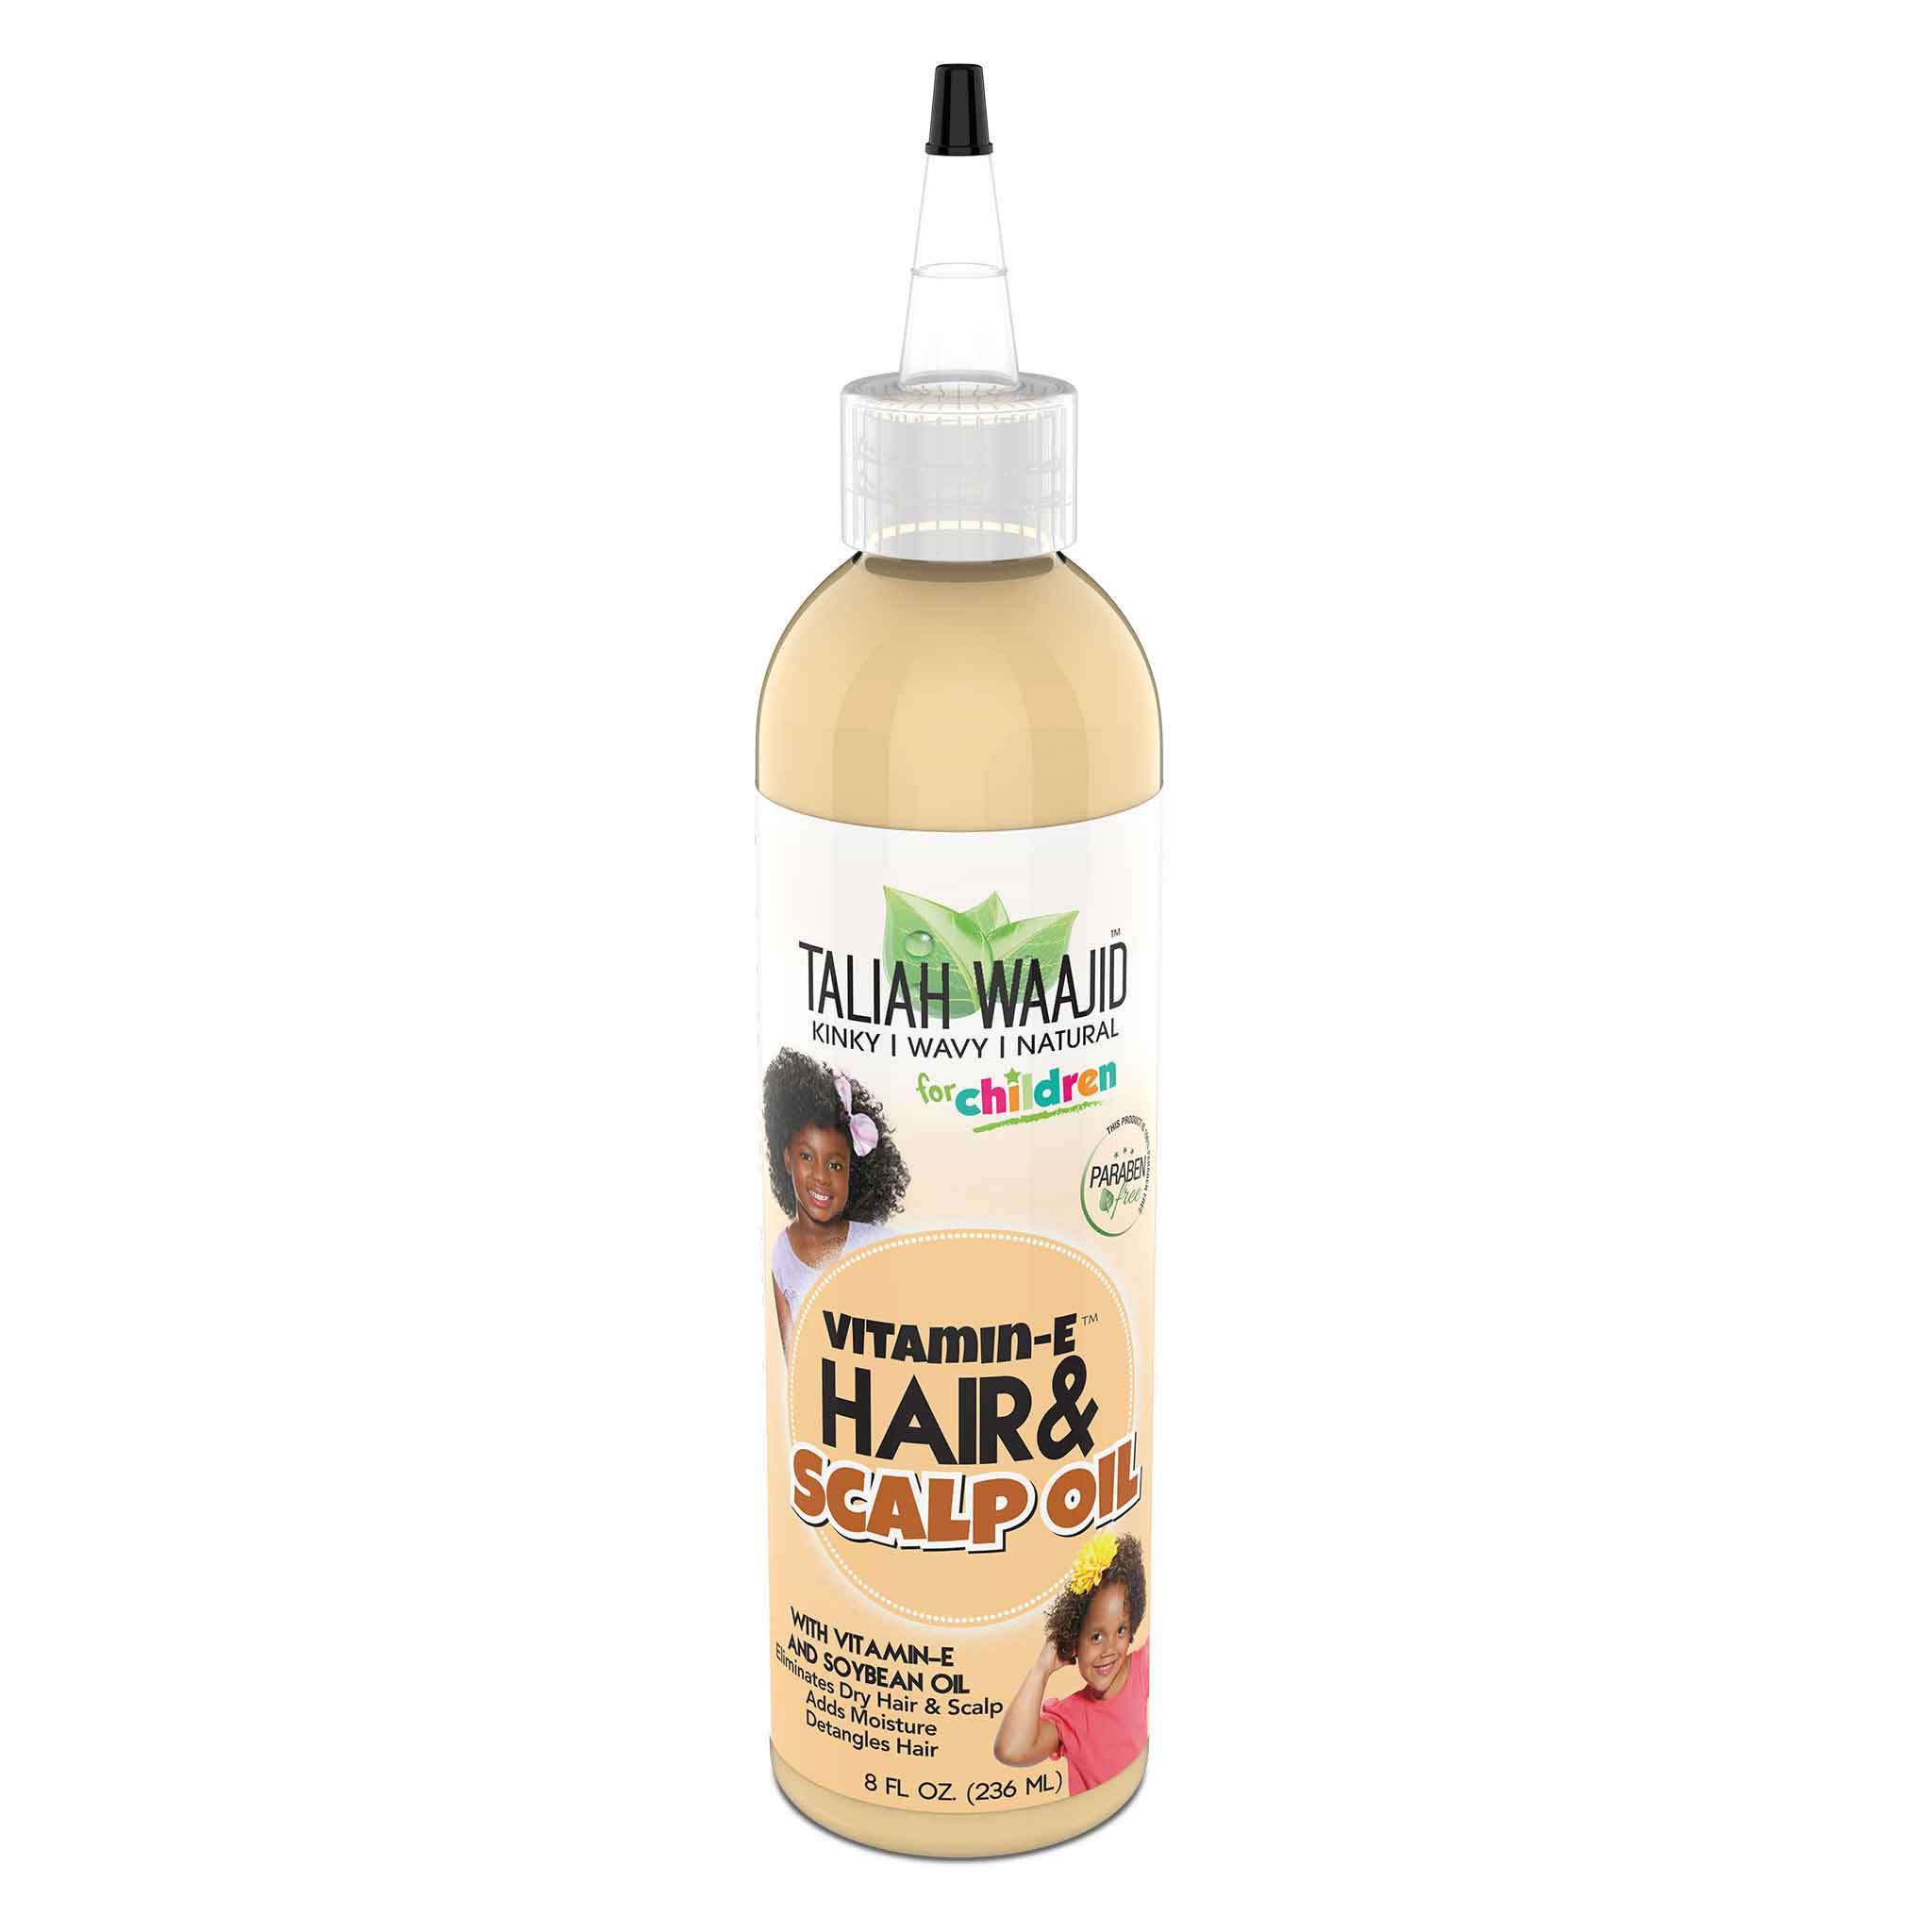 Kinky, Wavy, Natural Hair & Scalp Oil With Vitamin-E 8oz